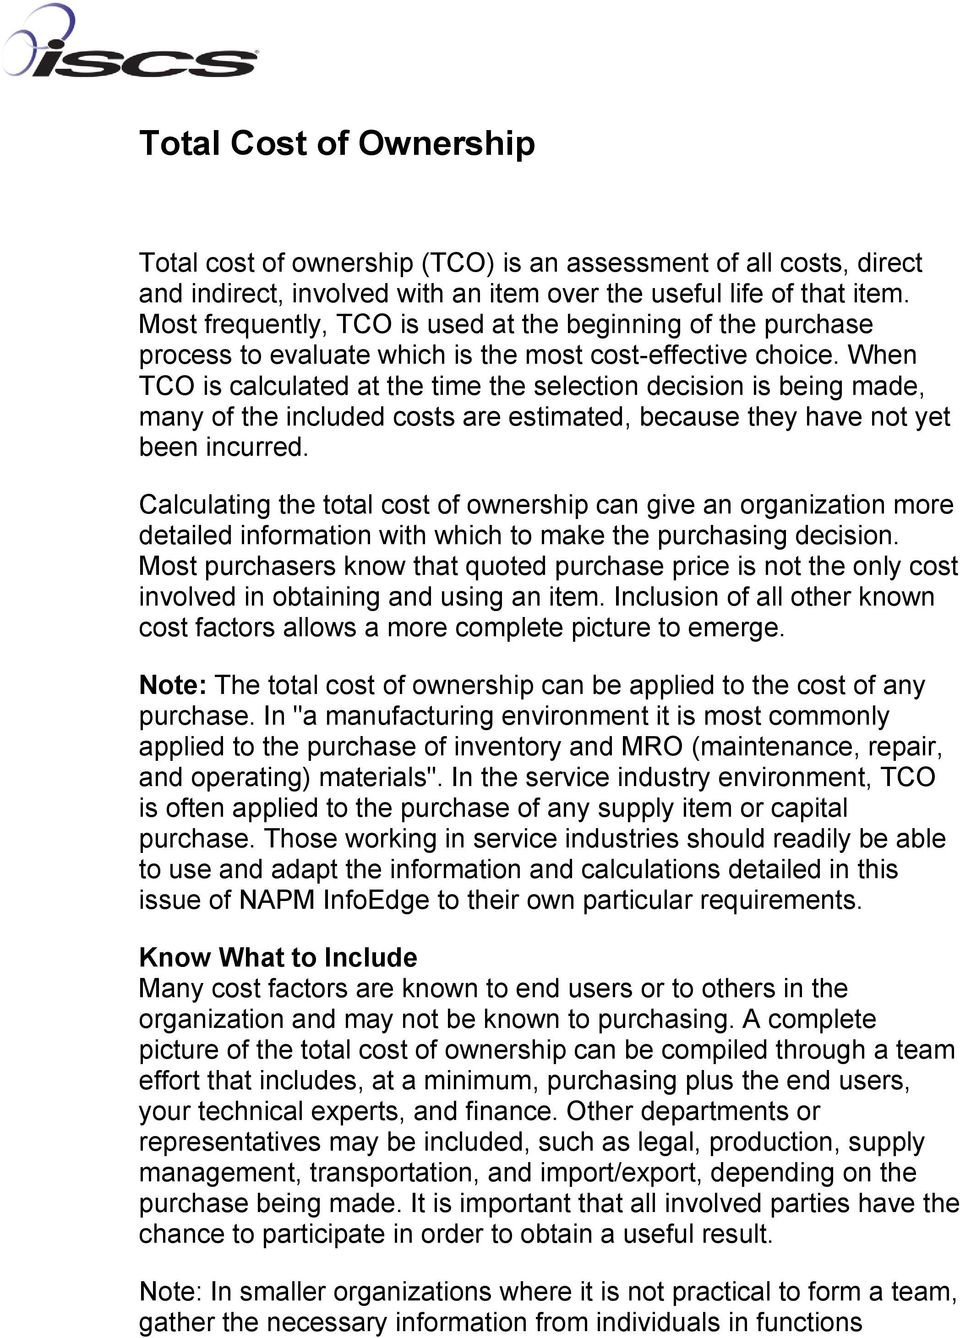 Total Cost Of Ownership  Pdf Regarding The True Cost Of Ownership Worksheet Answers